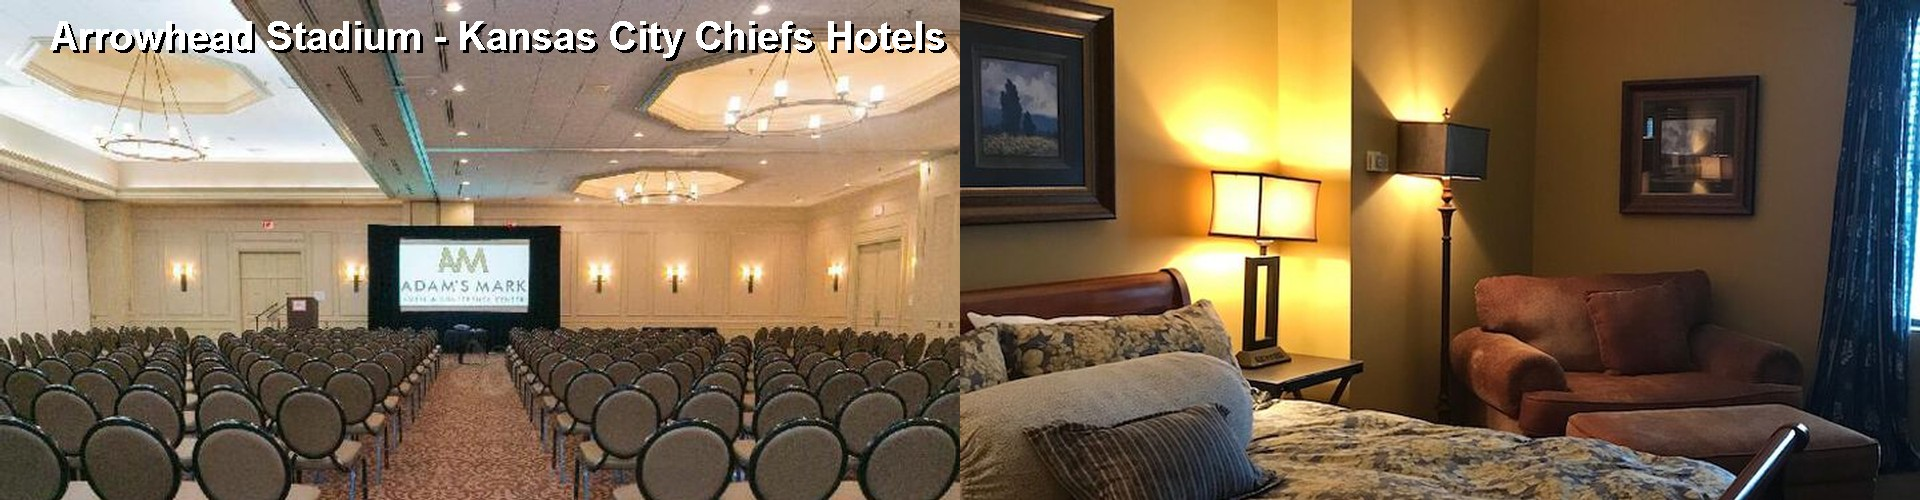 $42+ Hotels Near Arrowhead Stadium Kansas City Chiefs MO